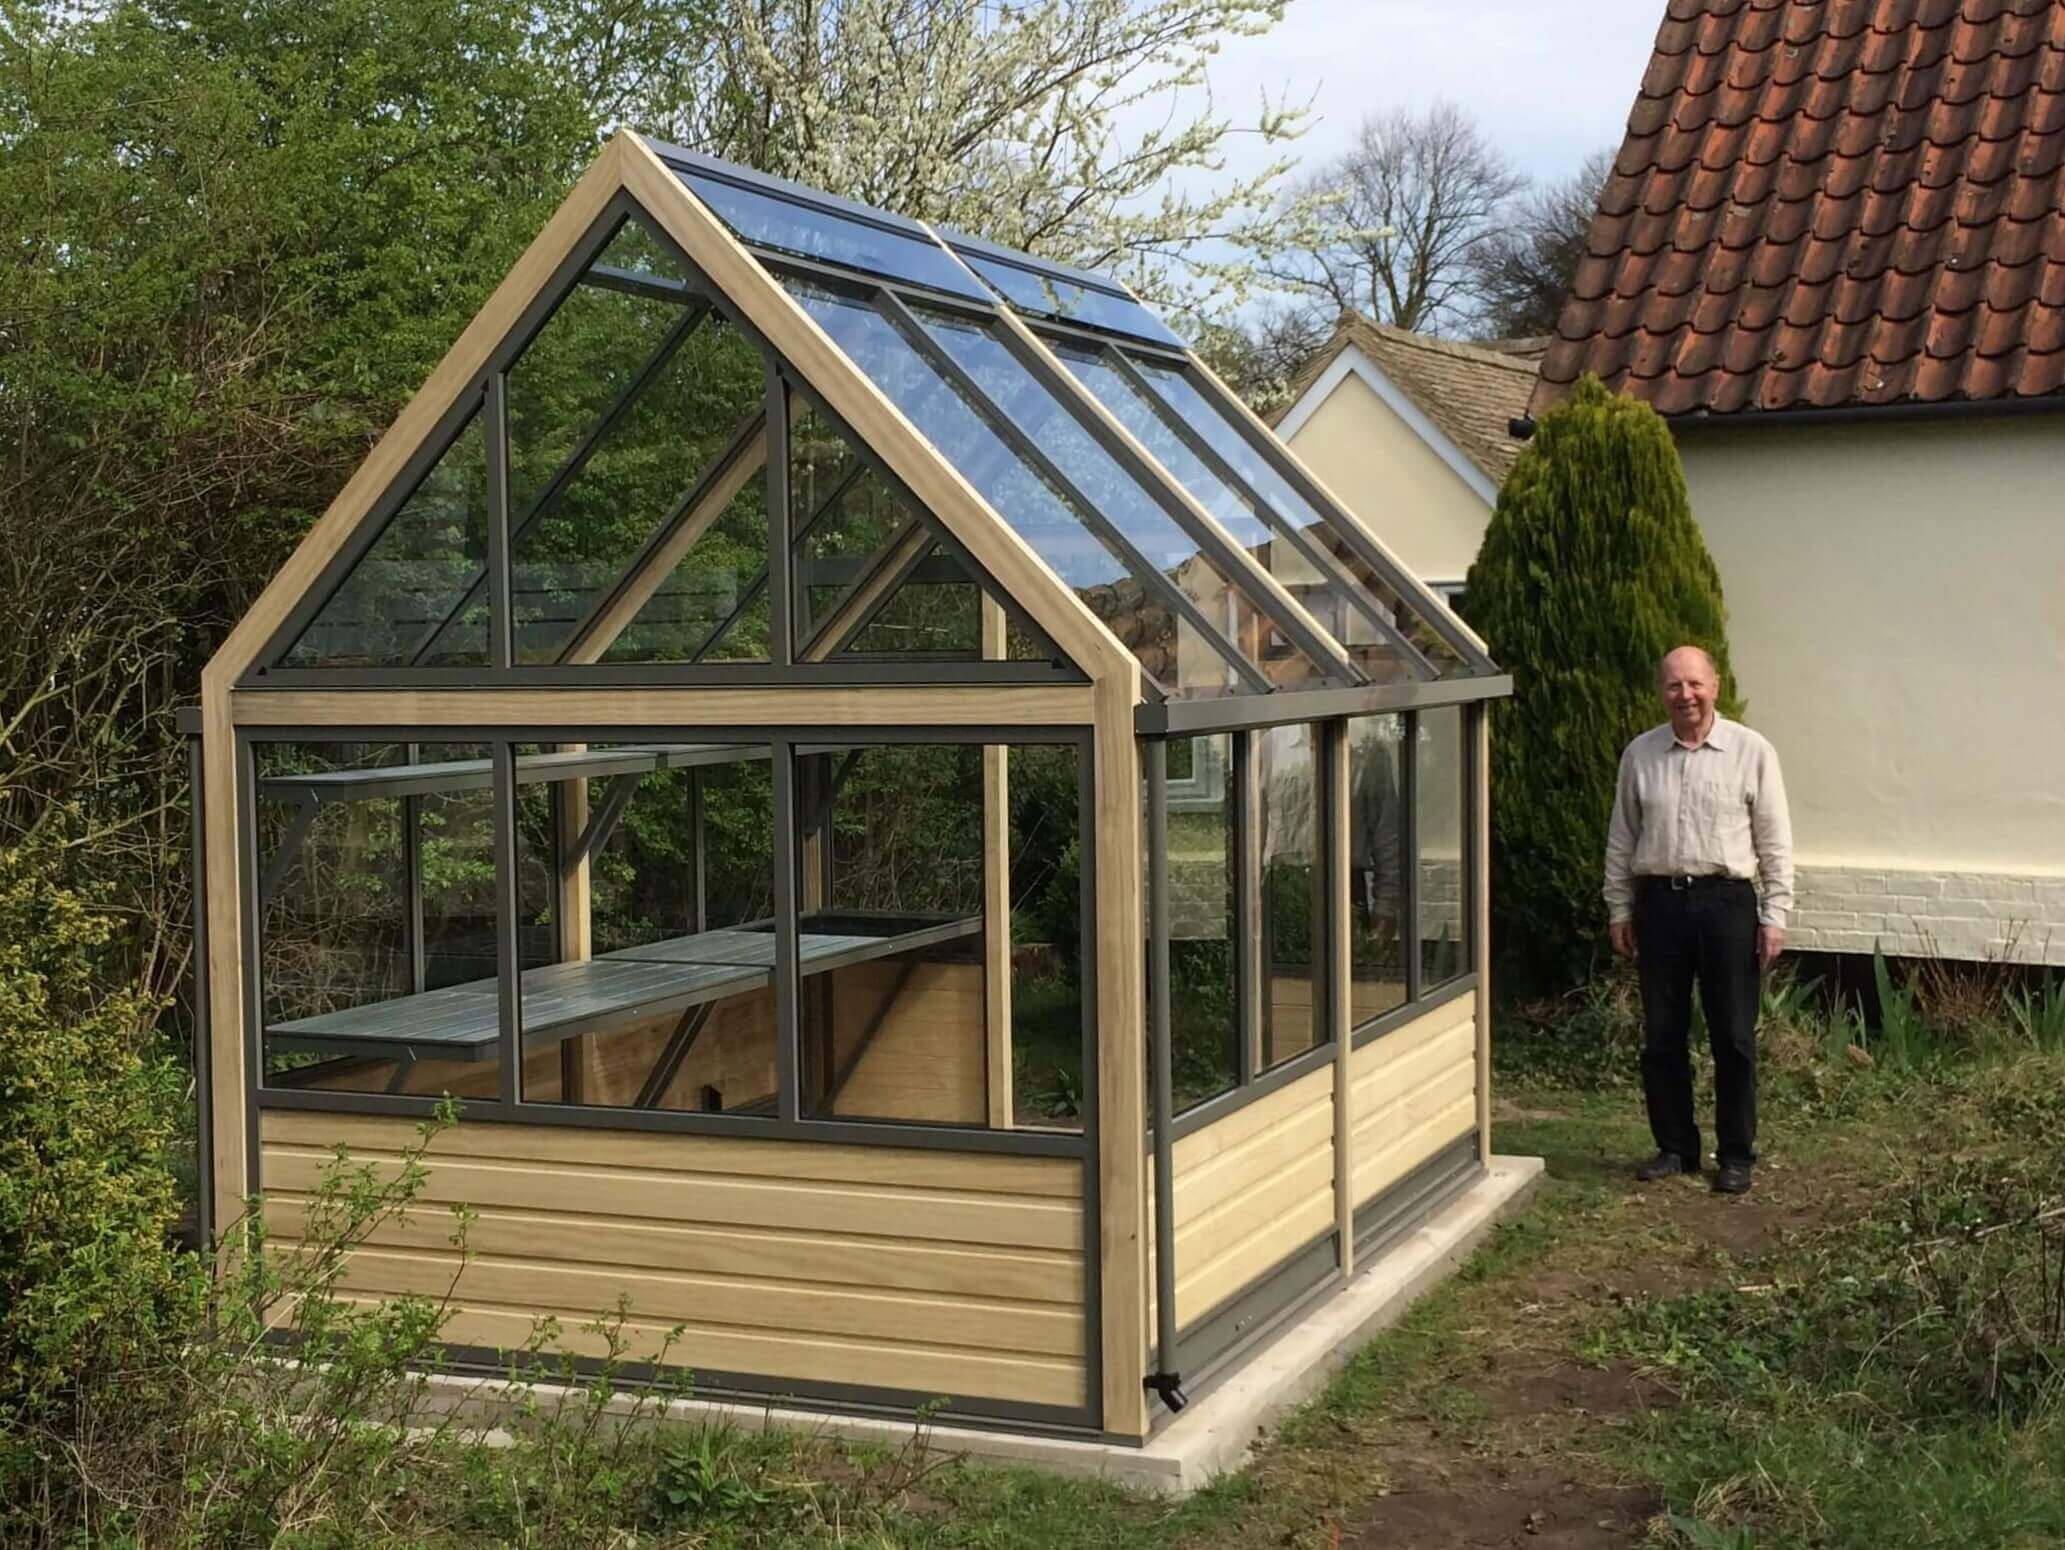 New Greenhouse Complete with Happy Customer